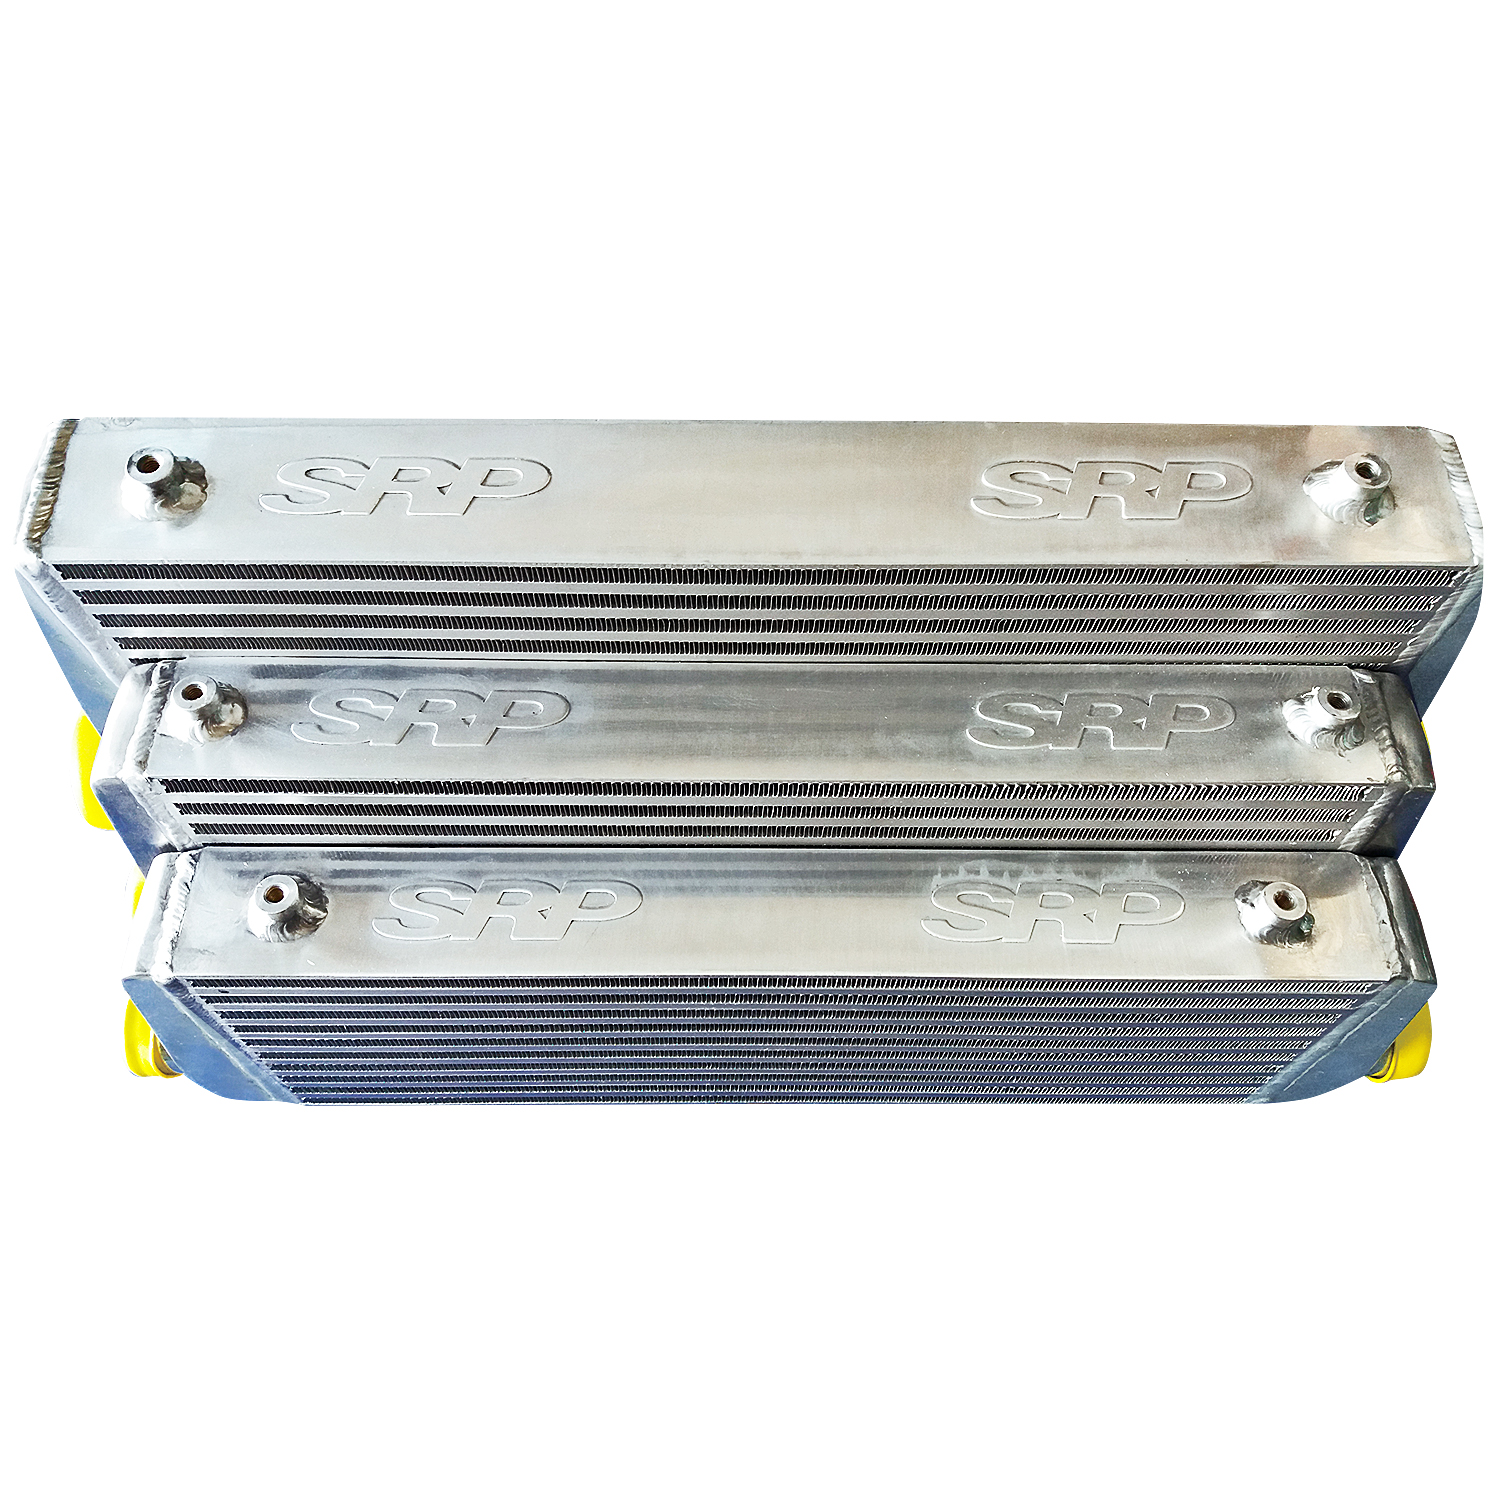 Intercooler 60 x 28 x 7,5 cm double fin with BAFFLED TANK